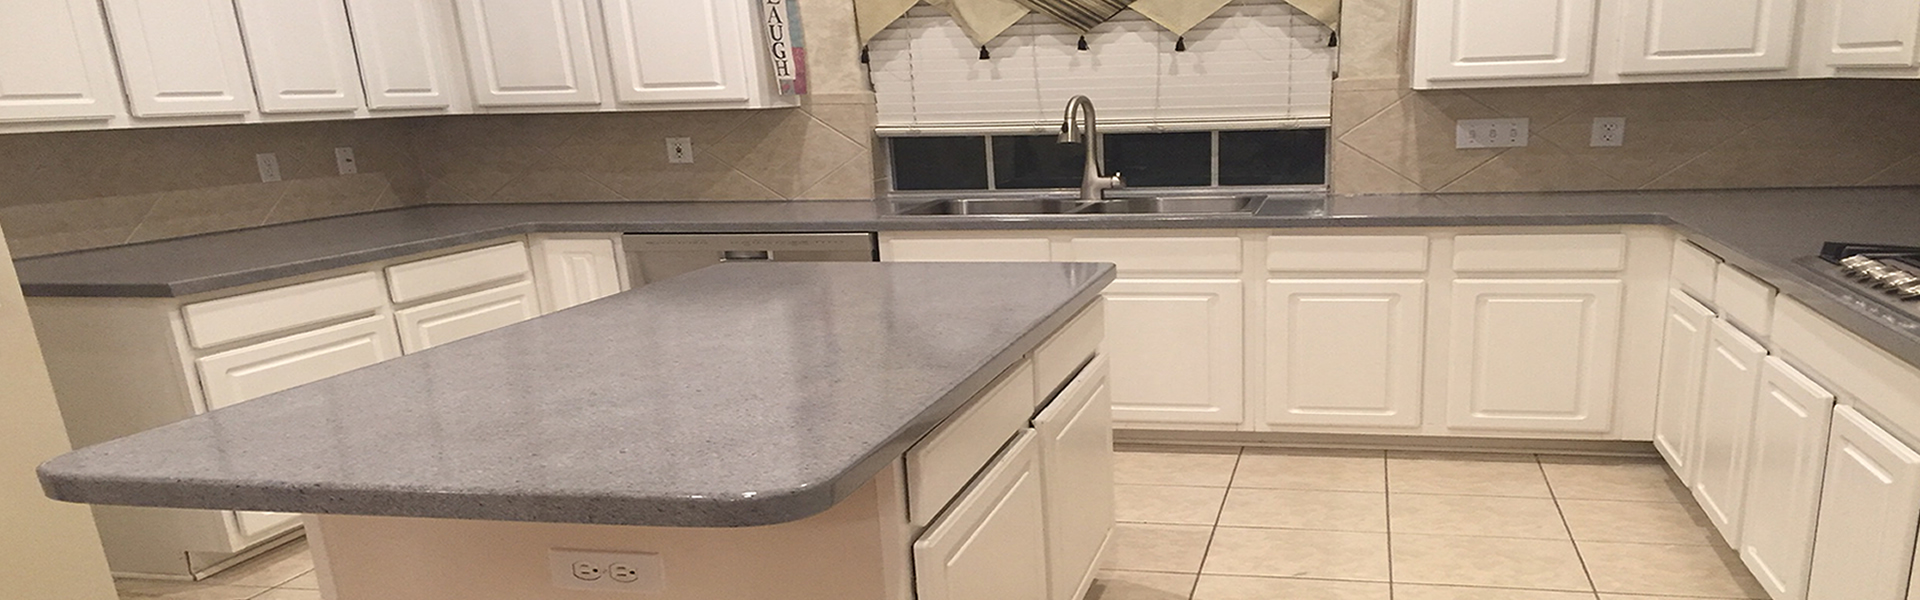 Reglazing Kitchen Cabinets Bathtub Refinishing San Antonio Texas Cultured And Laminate